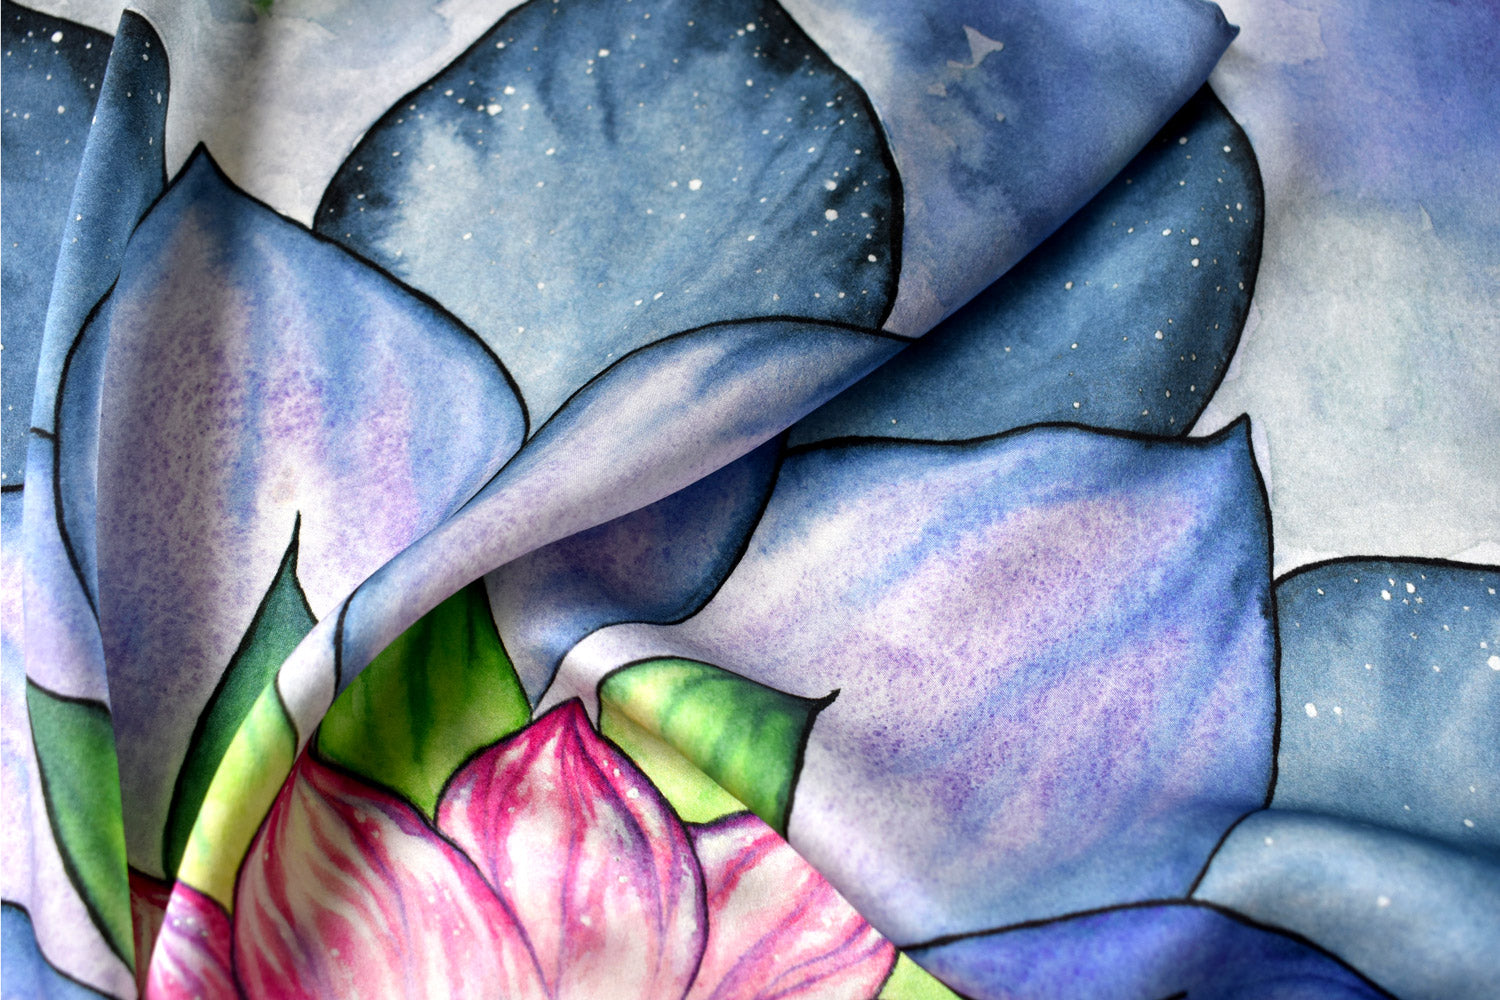 Silk Tarot card altar cloth detail, Glowing Lotus